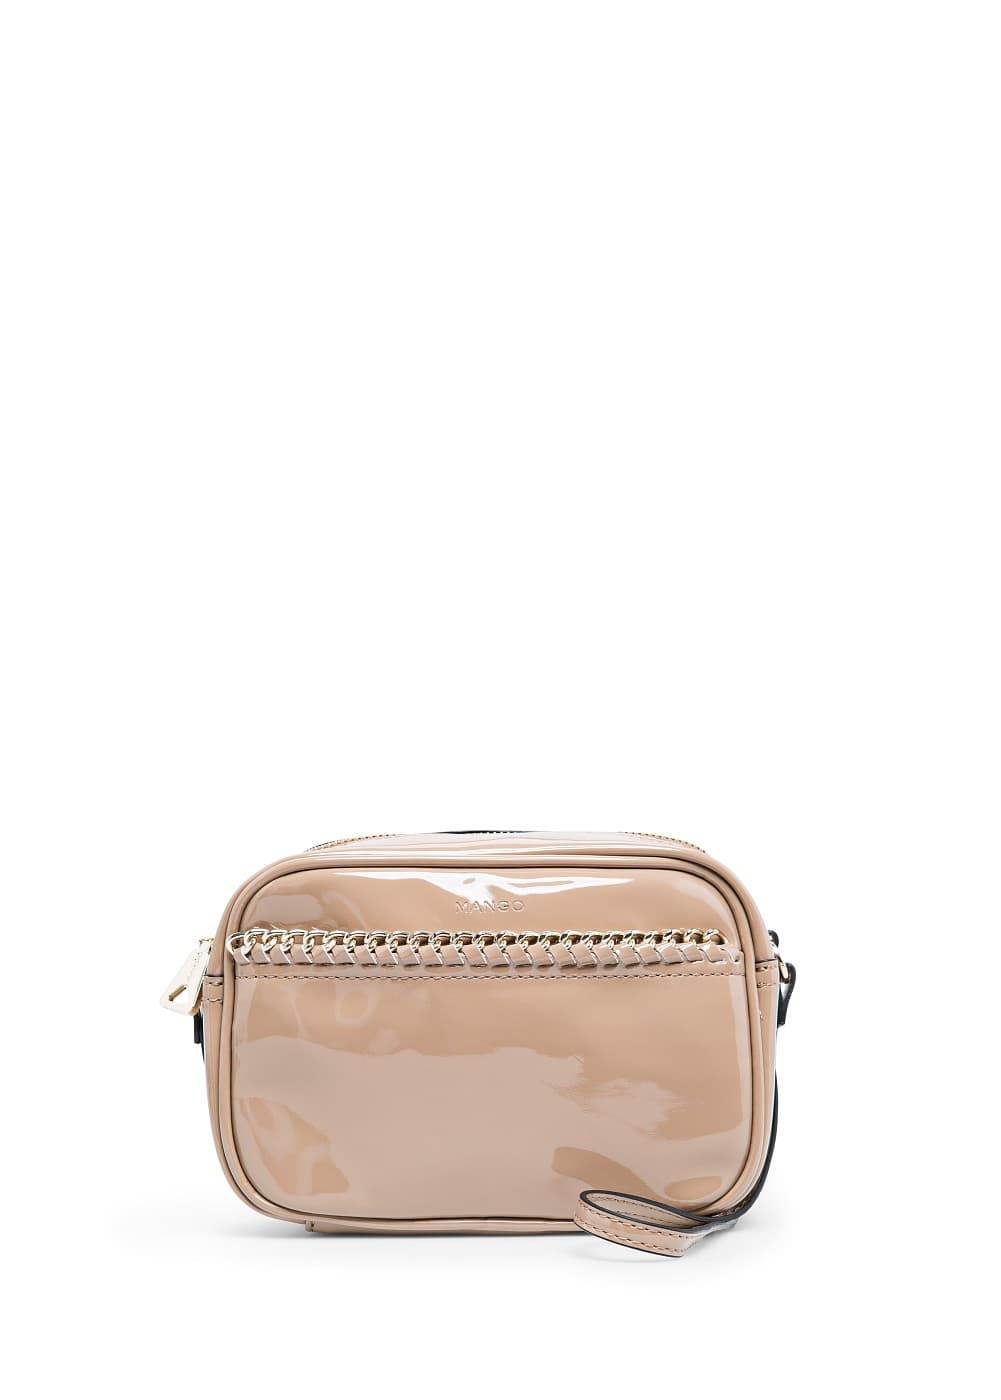 CHAIN PATENT SHOULDER BAG